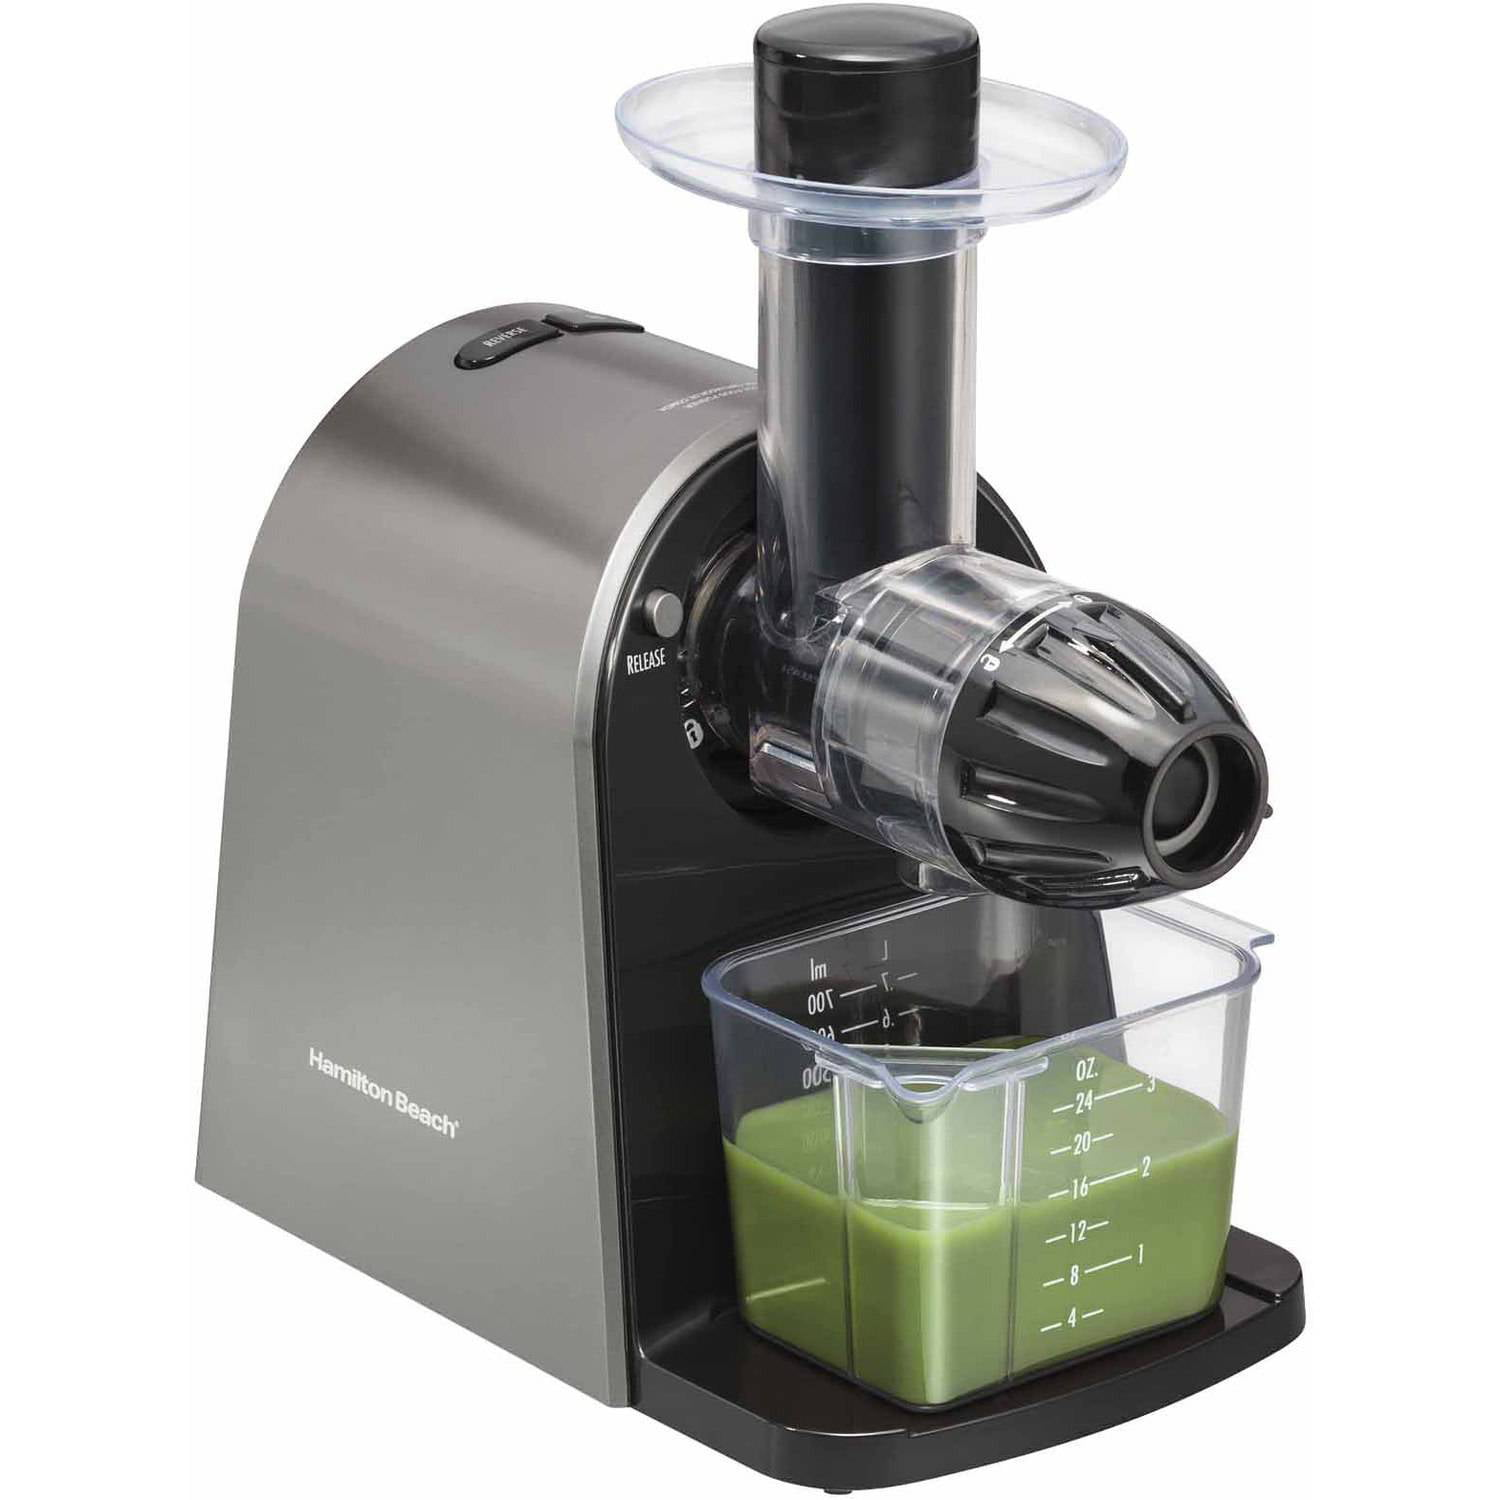 Best Slow Juicer Recipe : Cold Press Juicer Machine - Masticating Juicer Slow Juice Extractor Maker Electric Juicing ...